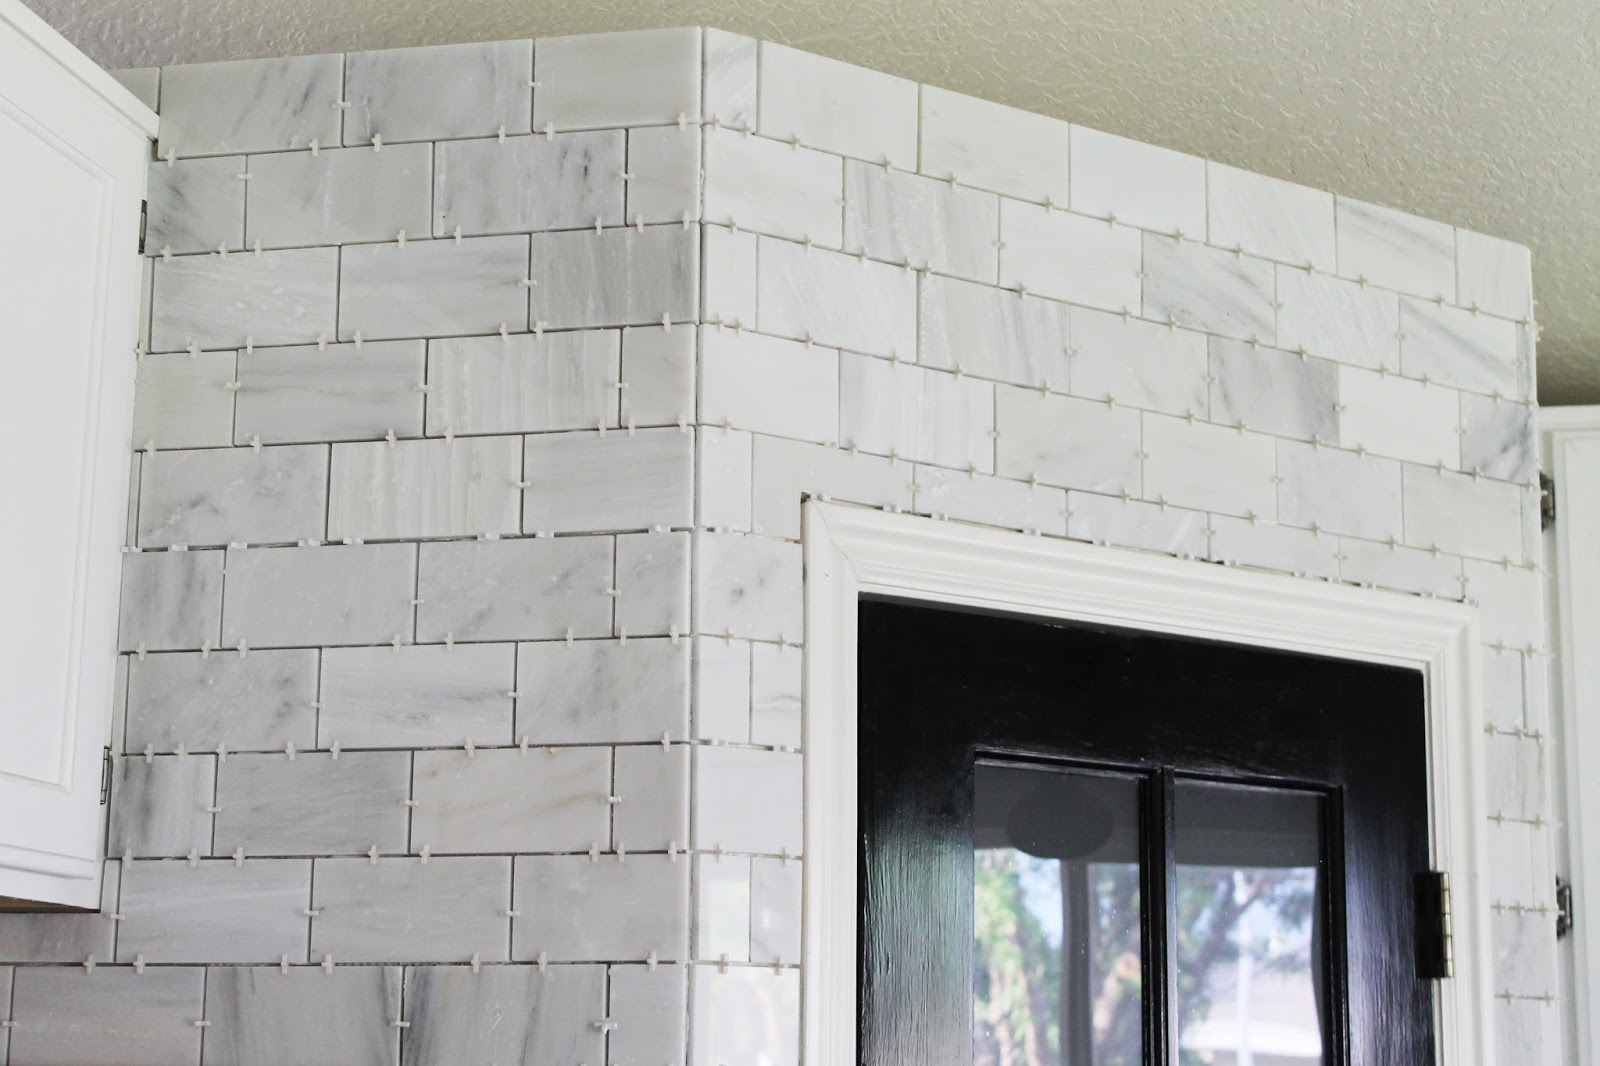 Marble tile countertop bathroom dressing area design ideas two the marble dailygadgetfo Choice Image